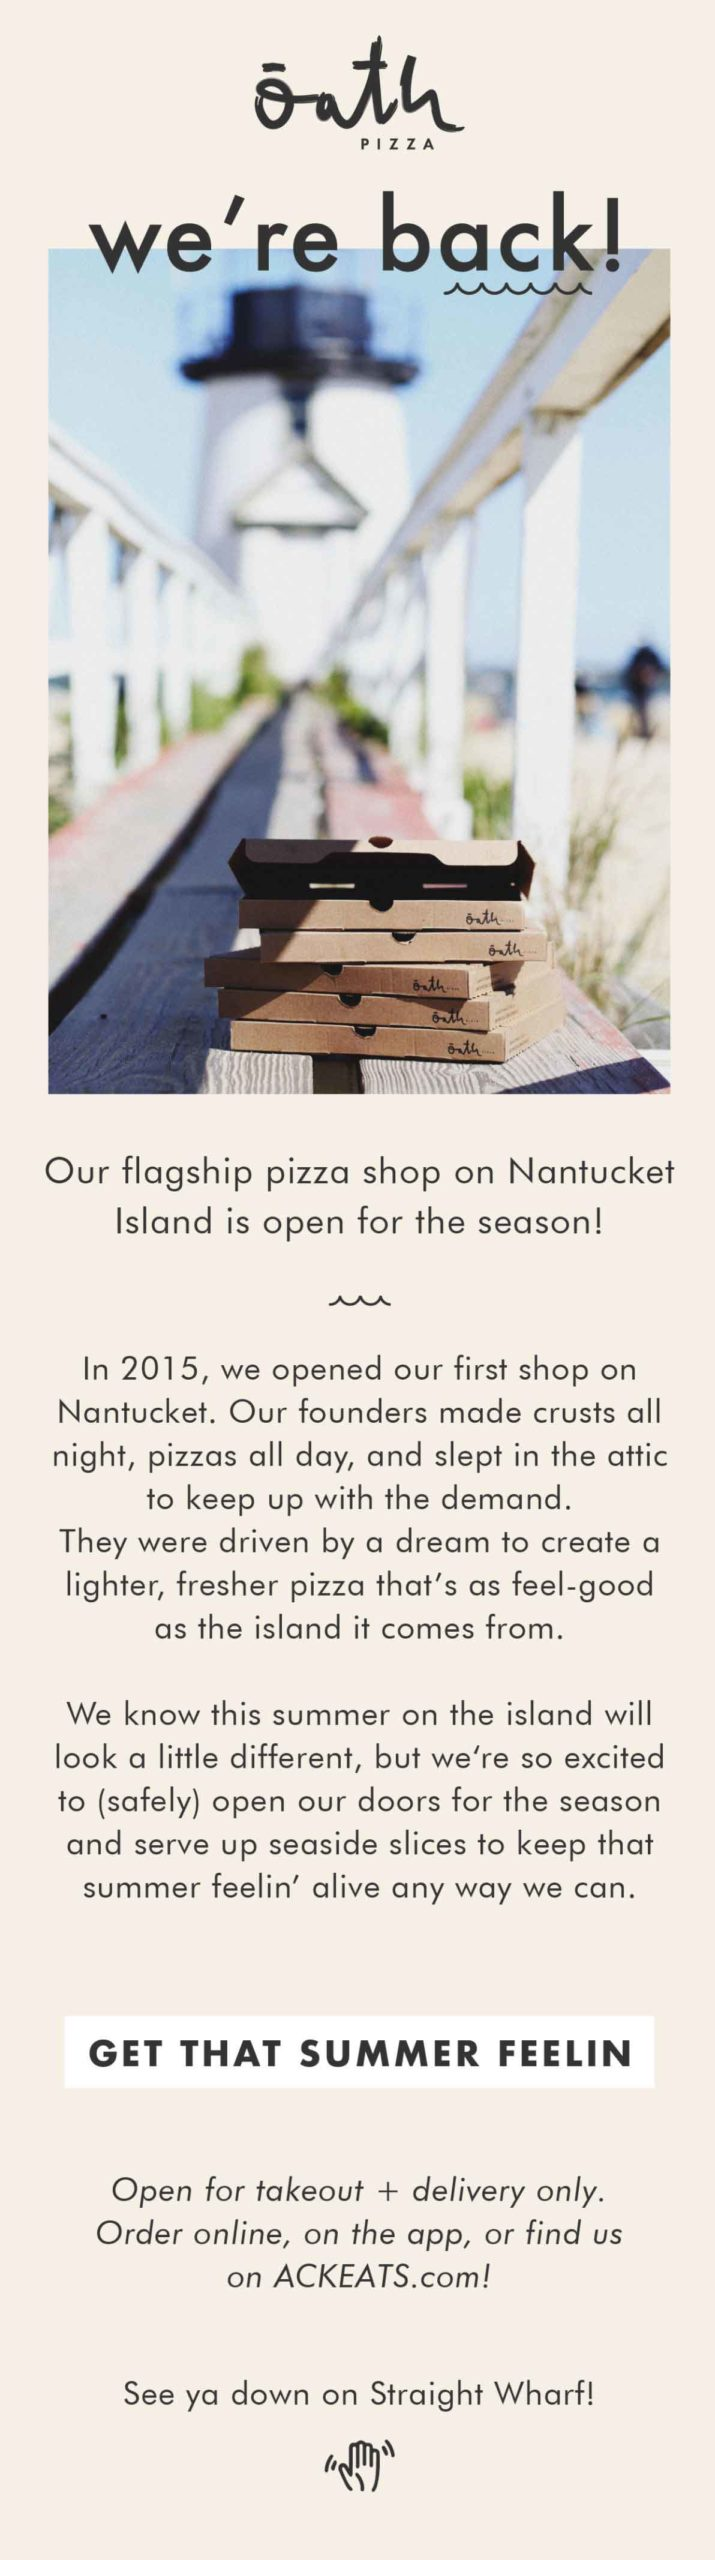 Oath Pizza: We're Back Email